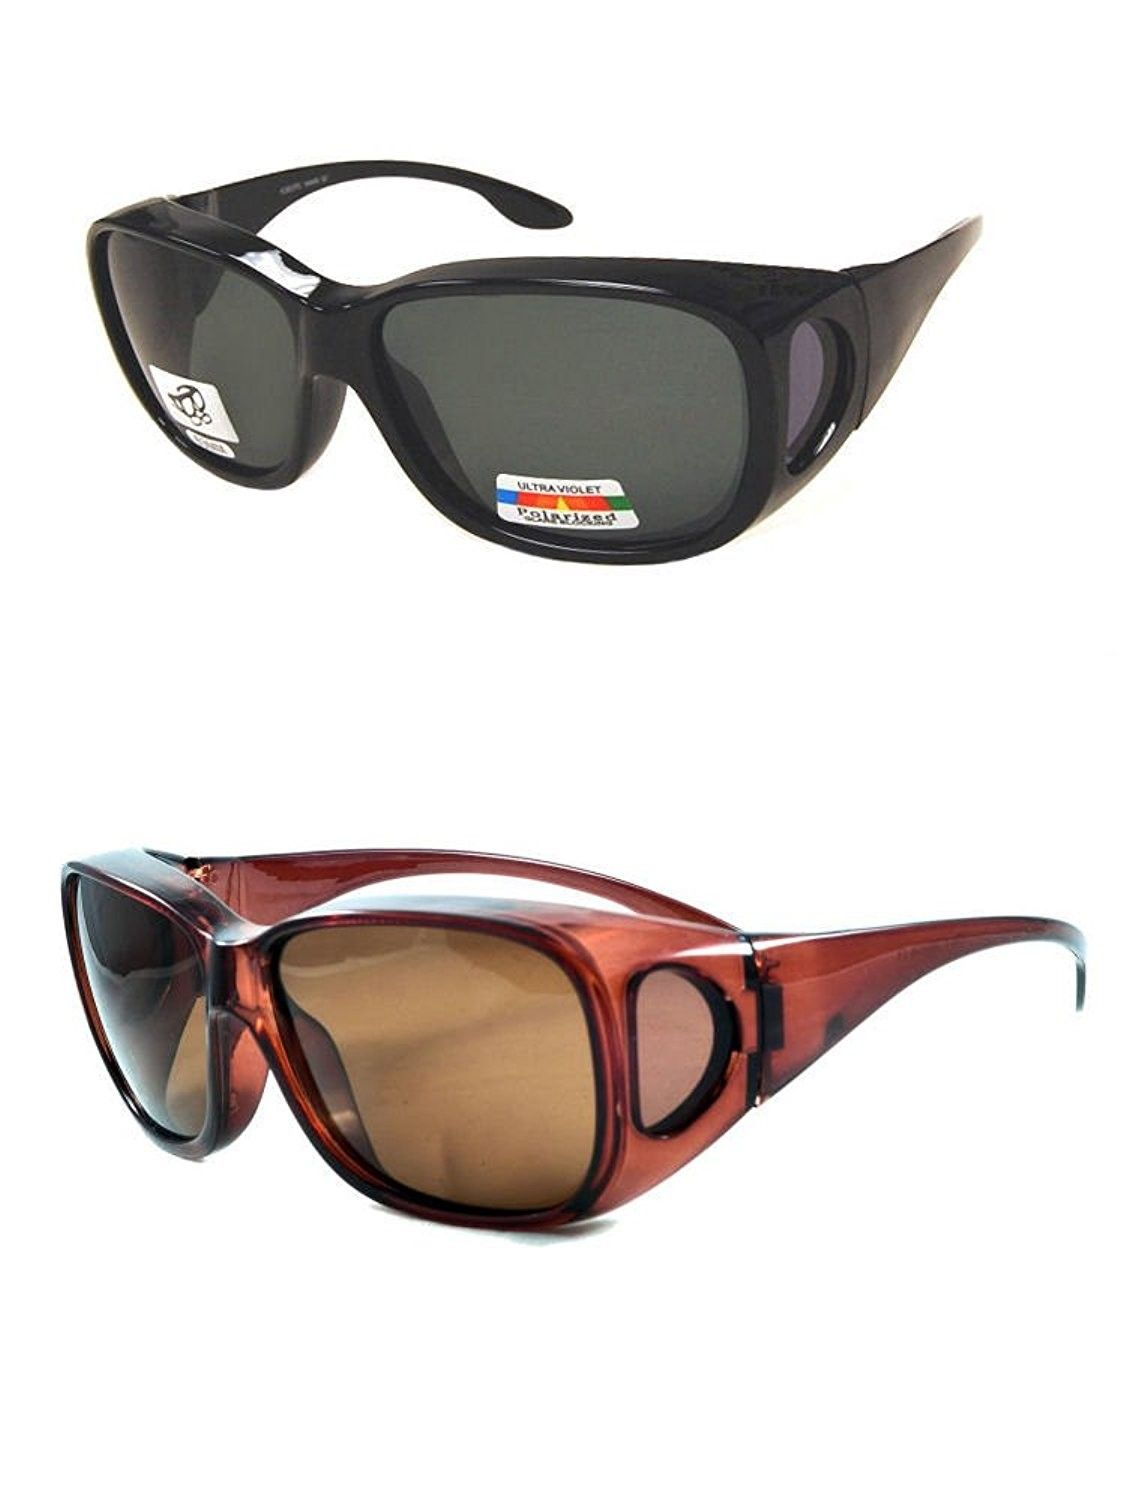 4ac12dfe570fd 2 Pair of Polarized Fit Over Sunglasses for Men and Women - Over ...